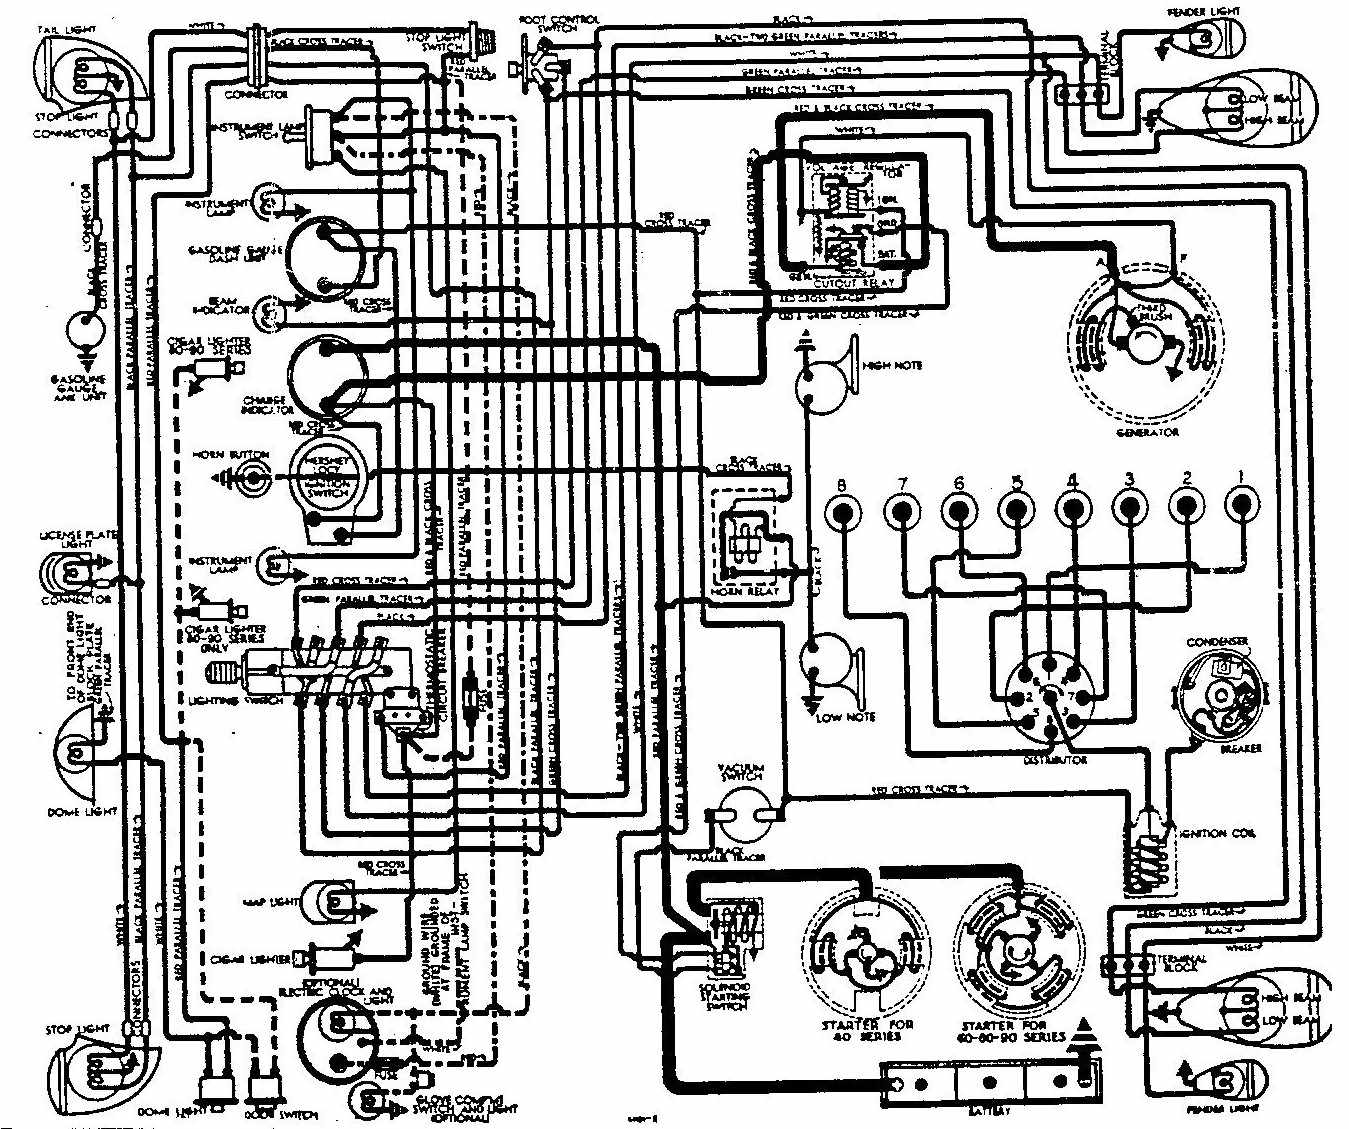 1952 Ford Generator Wiring - Schematic Diagrams